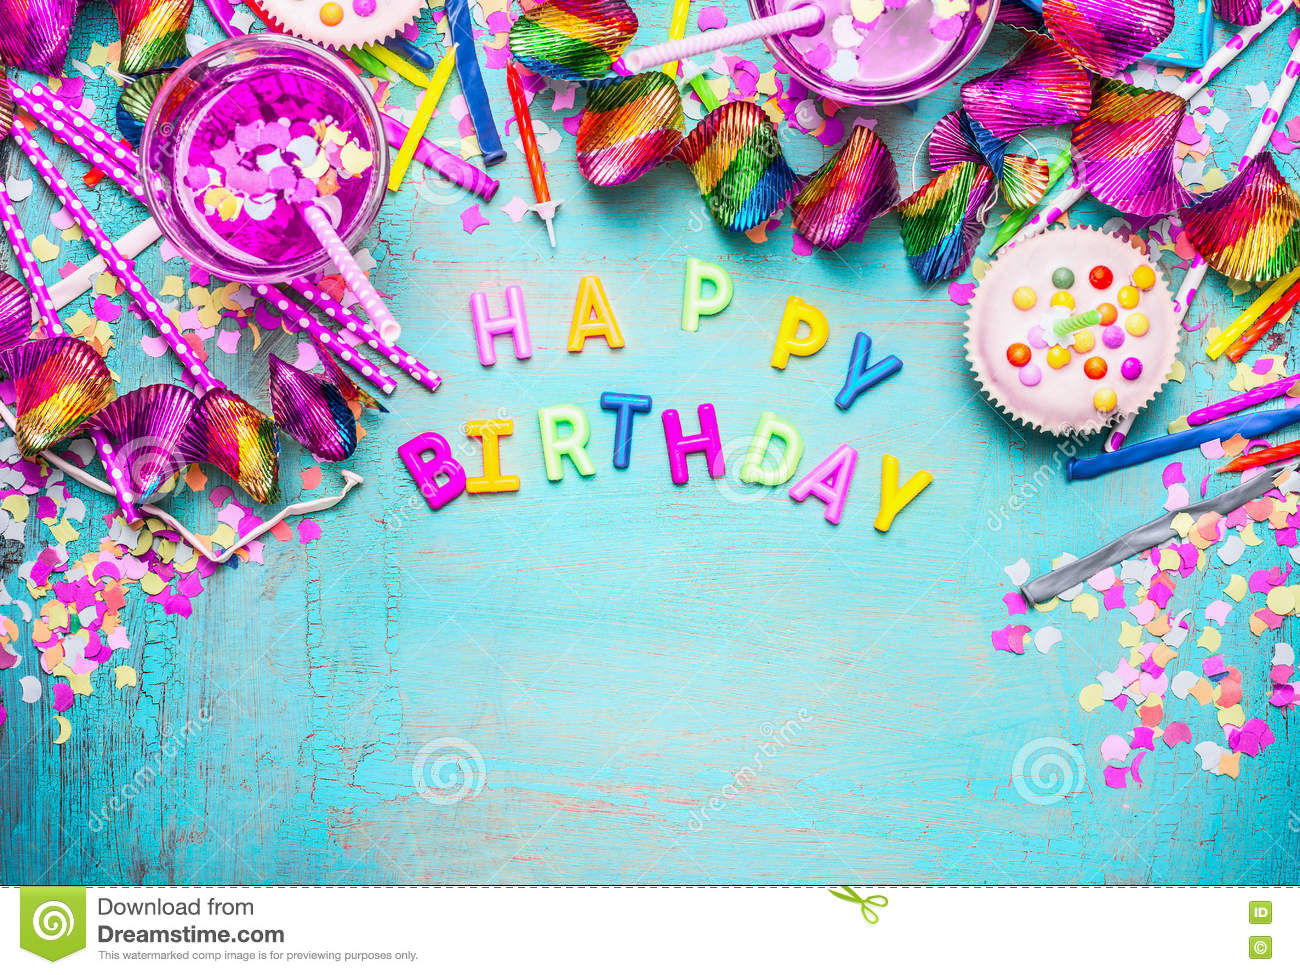 happy birthday backdrop decorations ; happy-birthday-background-letters-cake-drinks-pink-festive-decoration-turquoise-blue-shabby-chic-wooden-background-71419917